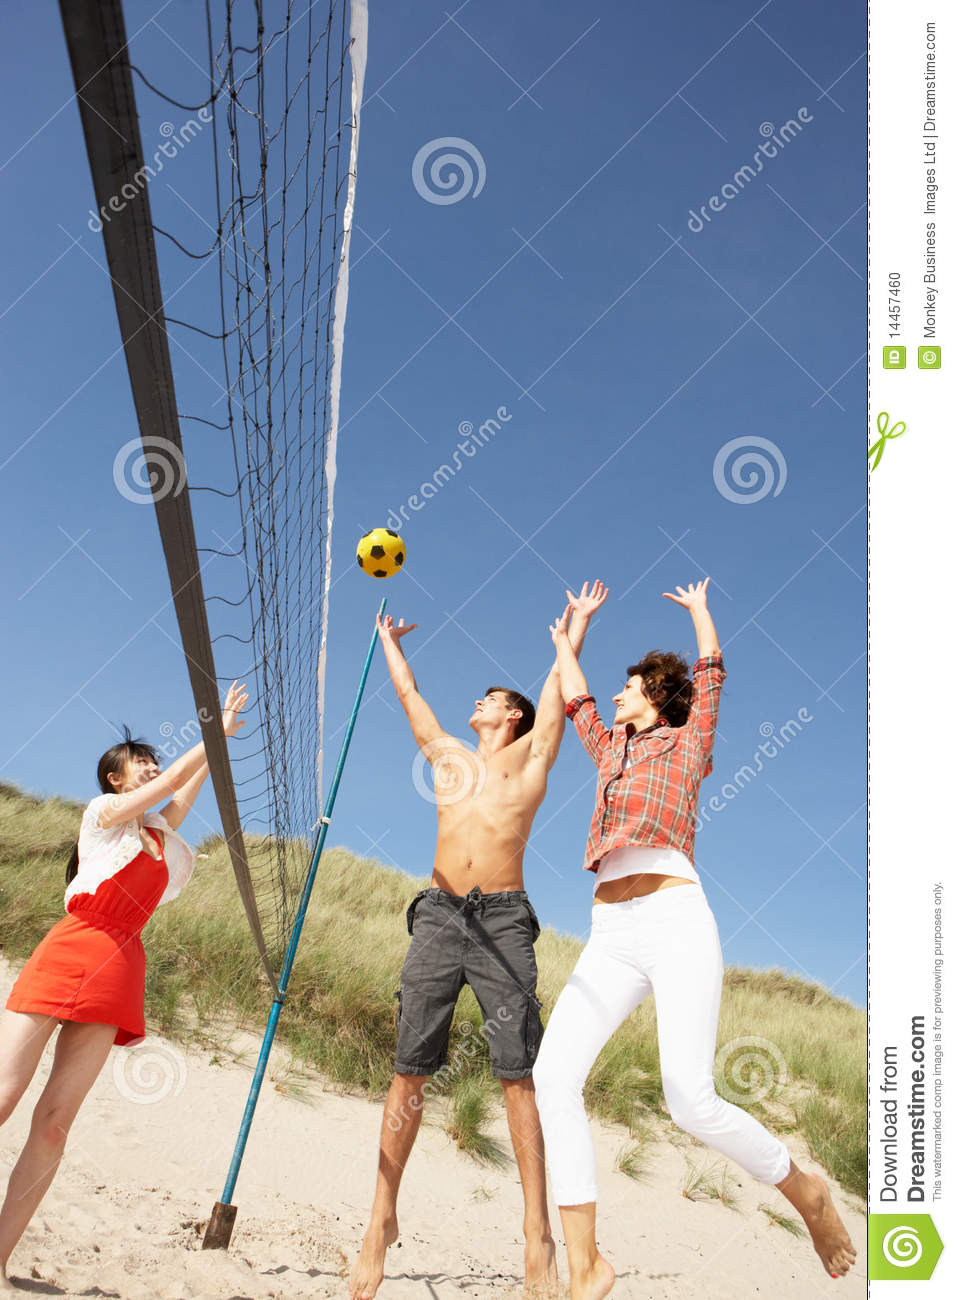 Friends Playing Volleyball On Beach Stock Photo - Image of ...